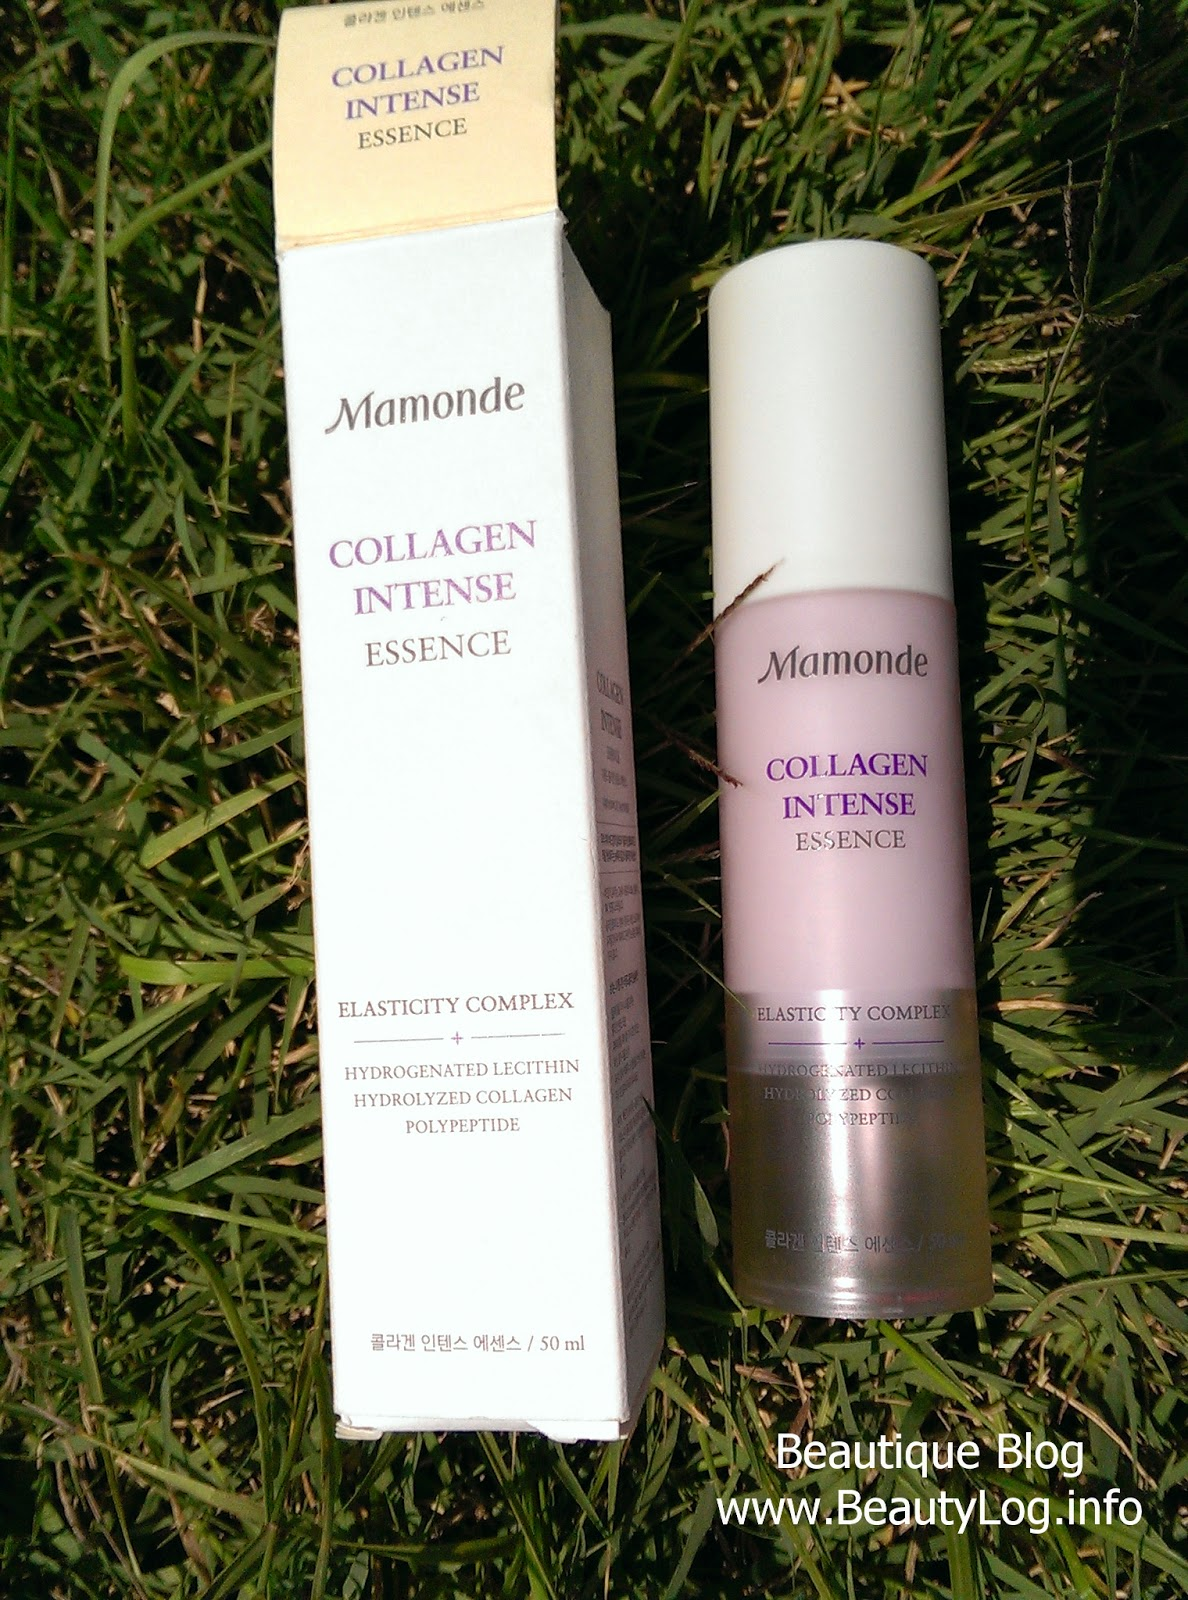 Mamonde Collagen Intense Essence